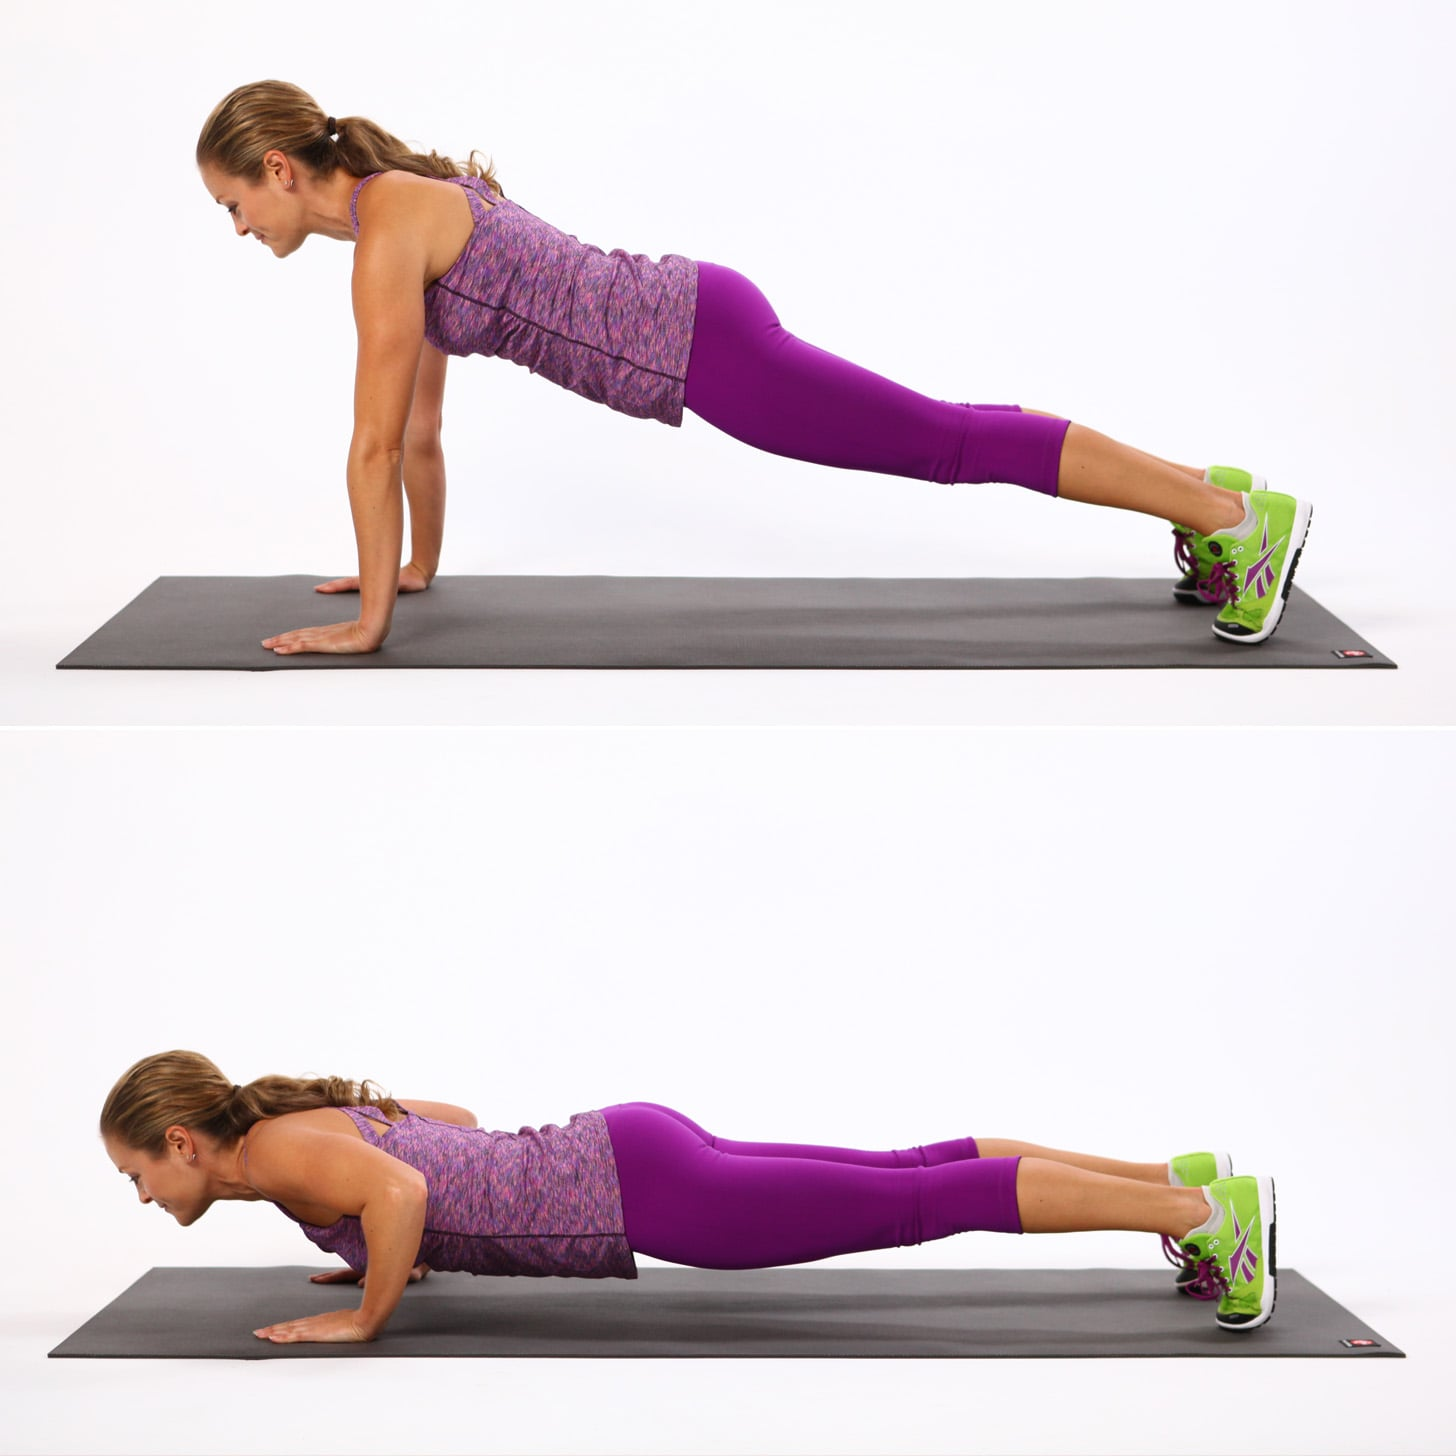 Basic Push-Up | Sculpt Arms Faster With These 8 Push-Up Variations ...